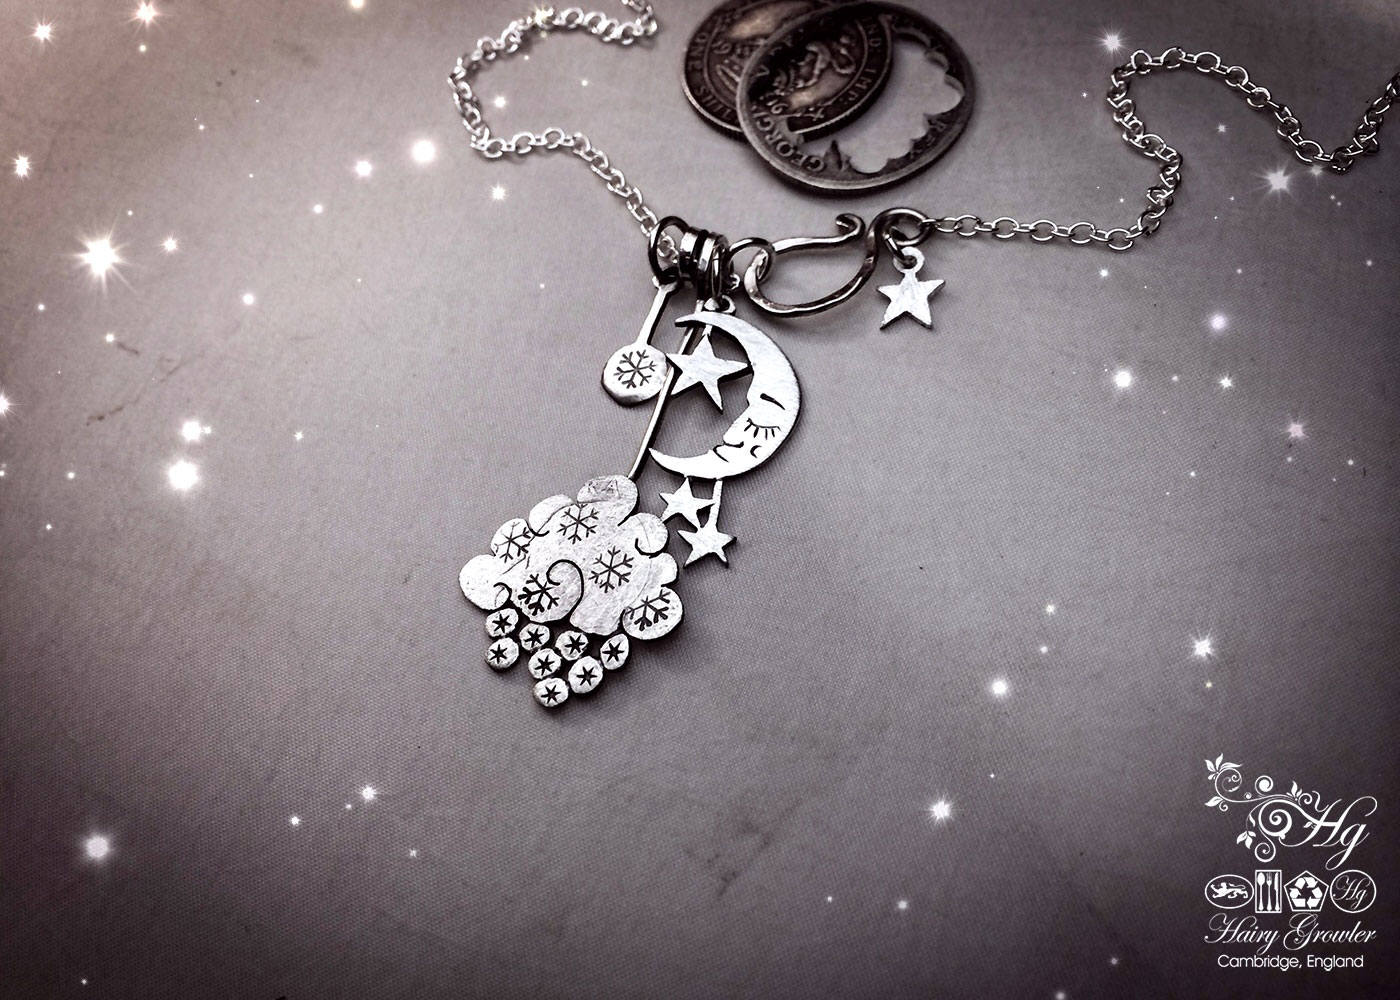 hand crafted and recycled sterling silver shillings and sixpence snowflakes and snow filled cloud